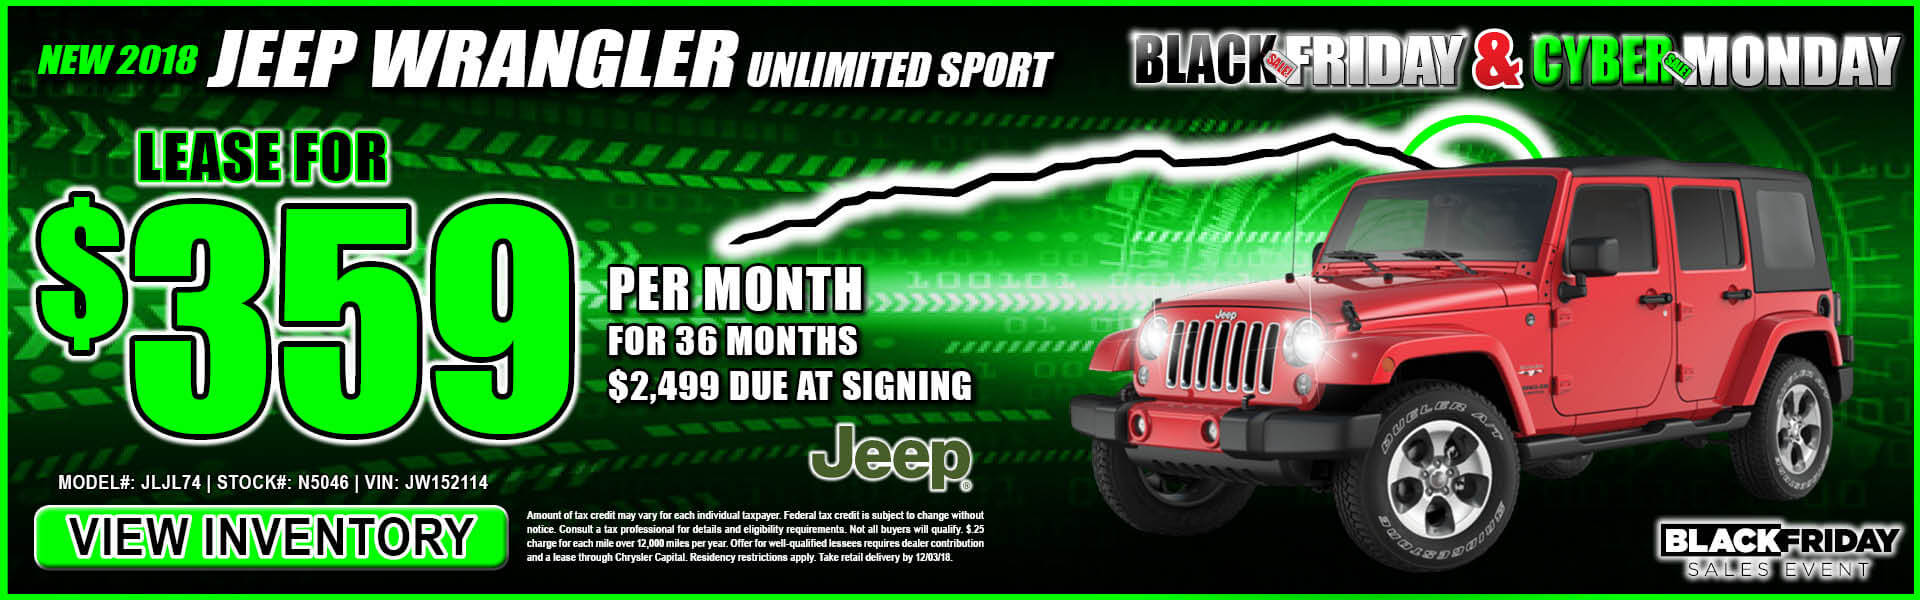 Jeep Wrangler $359 Lease